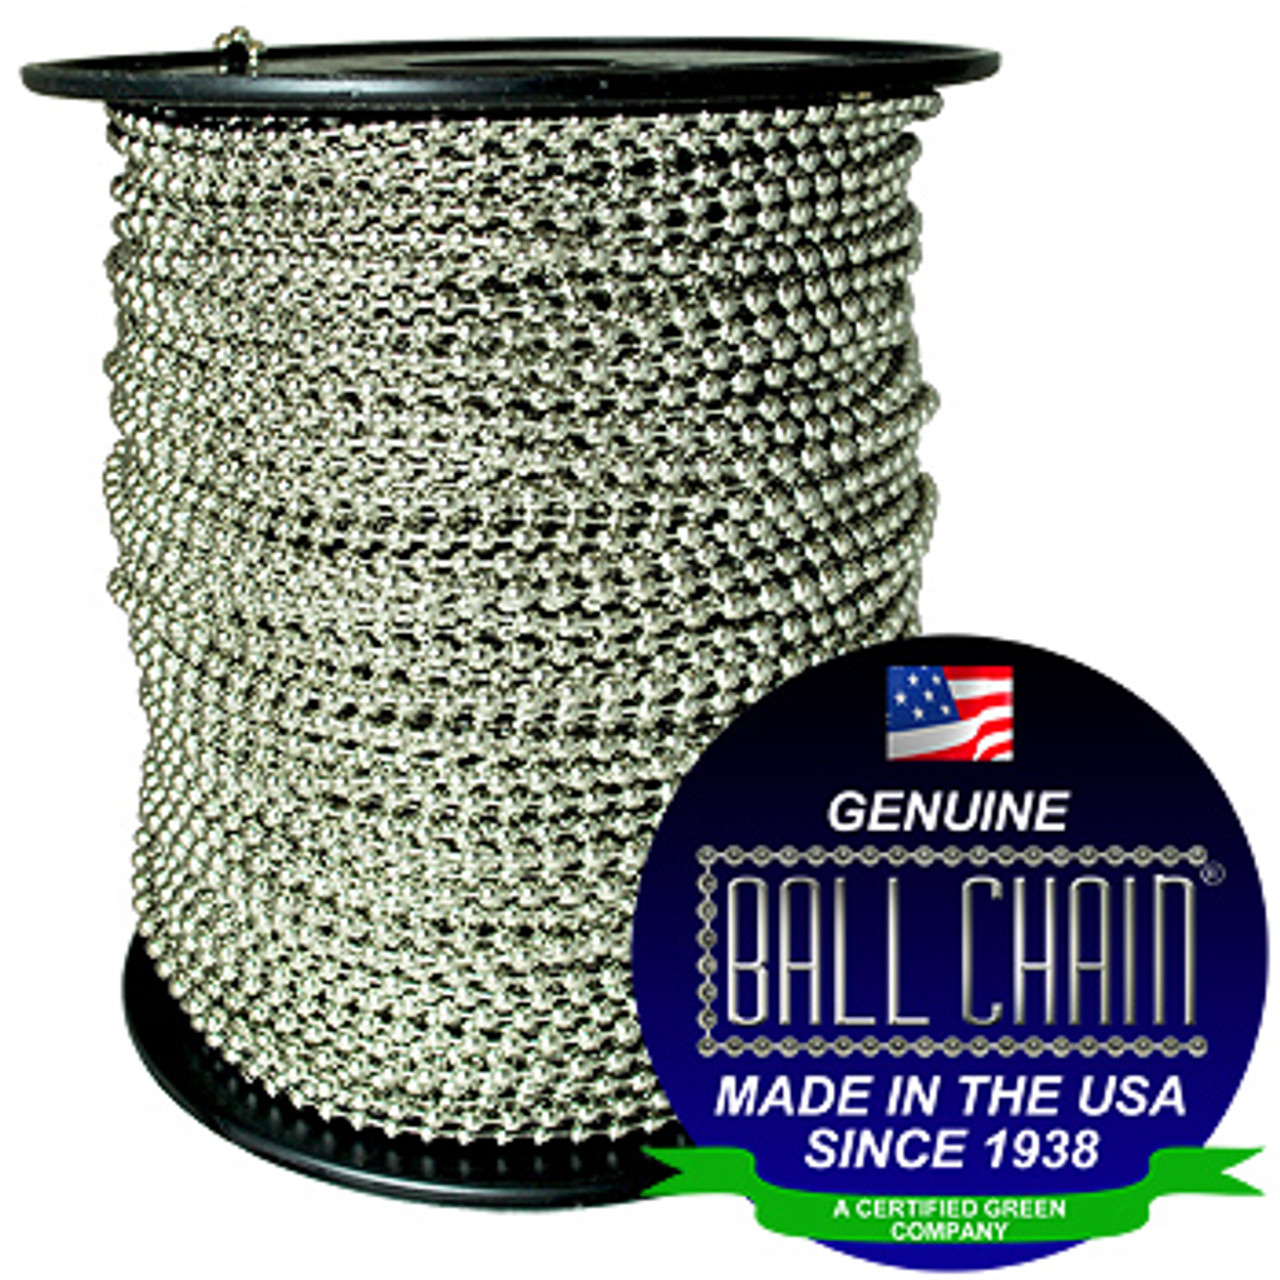 #15 Nickel Plated Brass Ball Chain, bead chain, or beaded chain spool or roll. The ball chain watermark/seal is located on the bottom right of this product image.